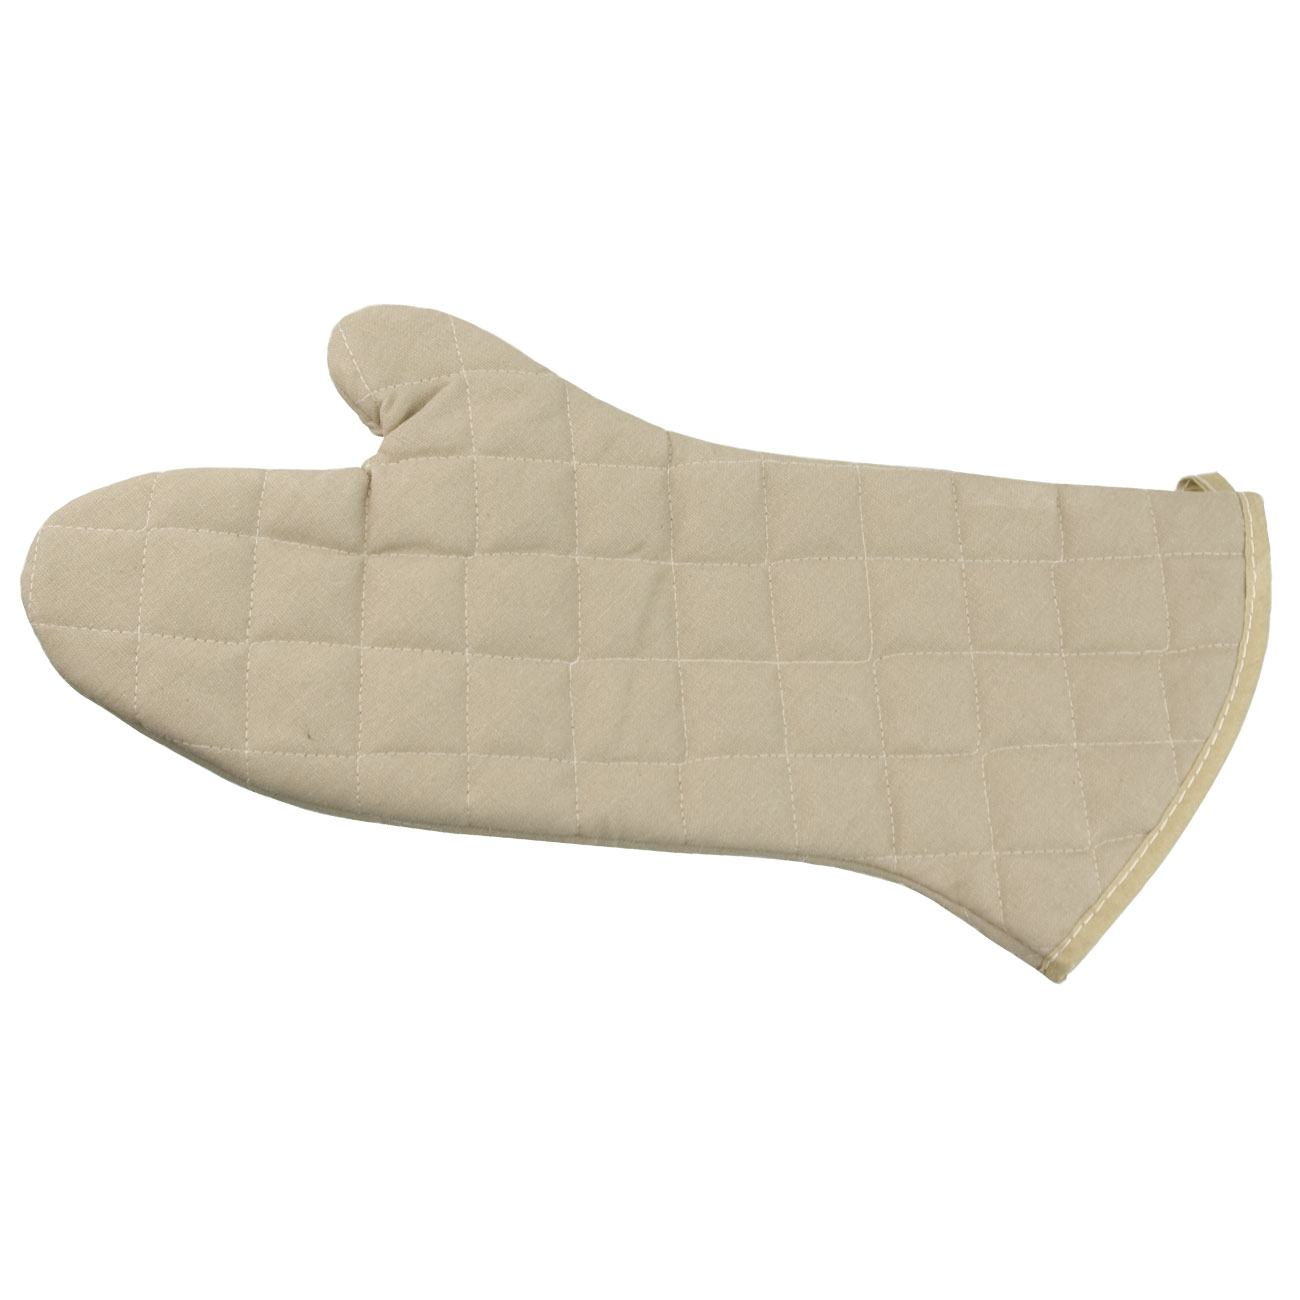 Flame Retardant Oven Mitt, 17 inches